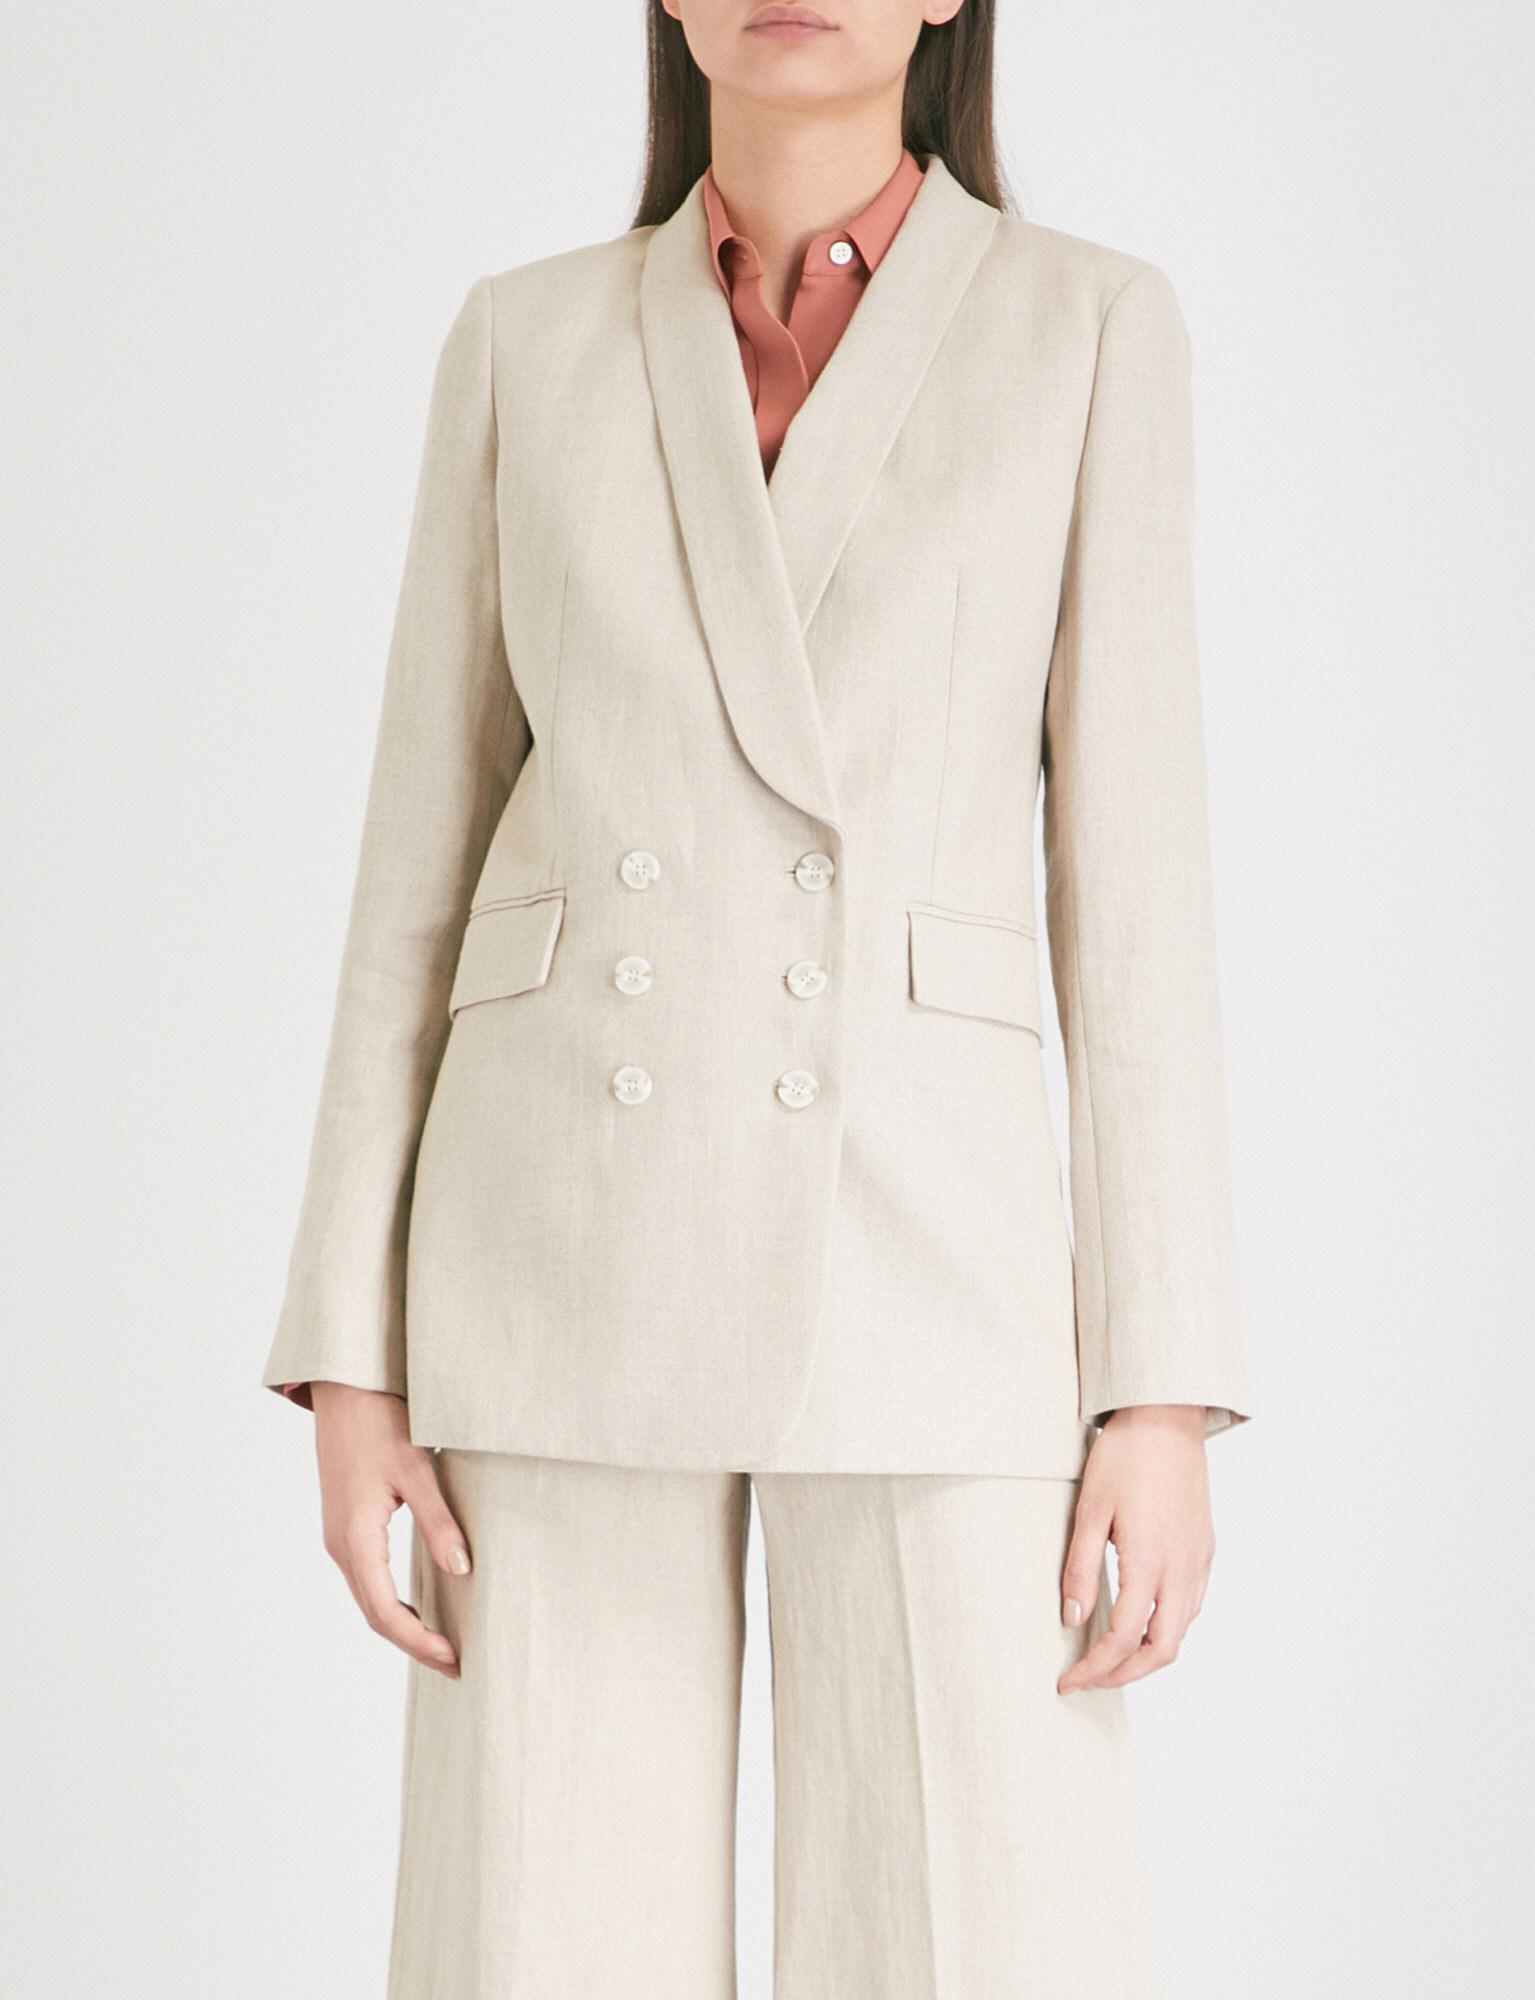 499abbf8d8e Theory Double-breasted Linen Blazer in Natural - Lyst